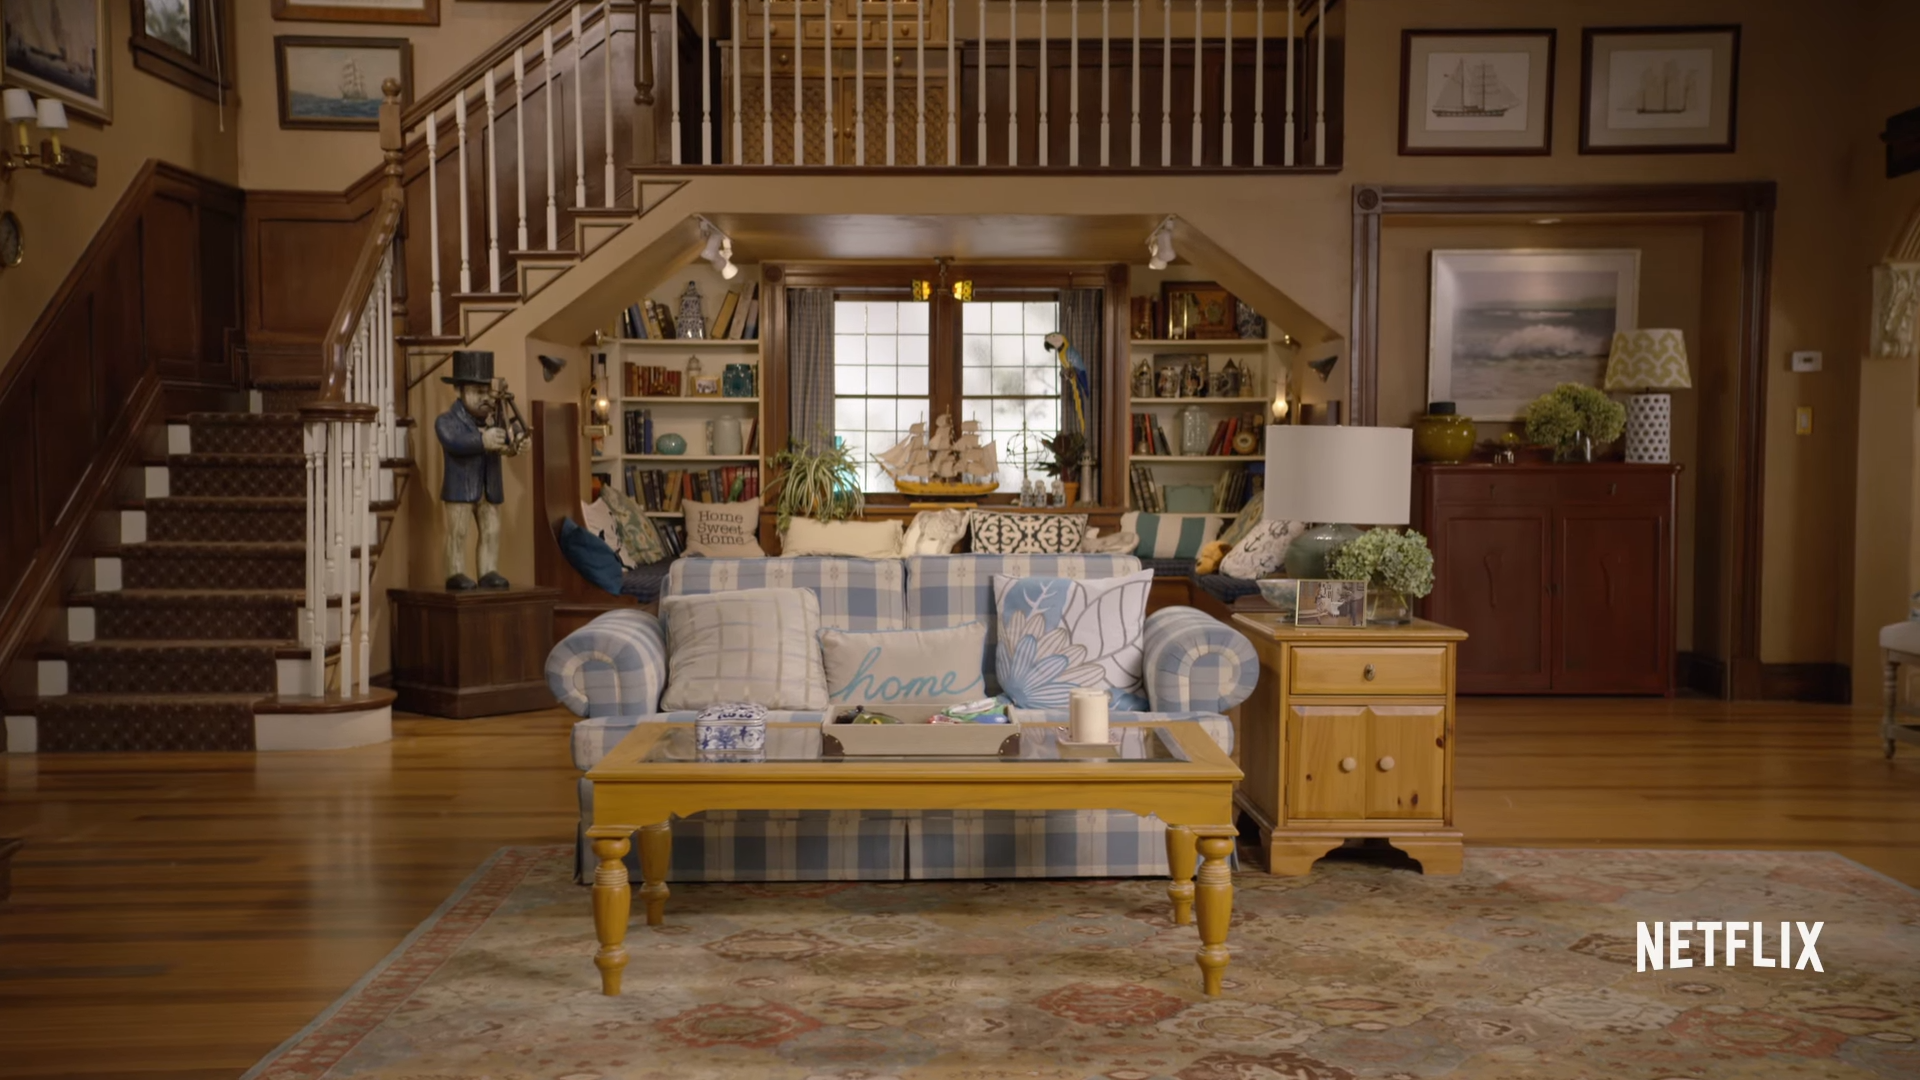 image fuller house house interior full house